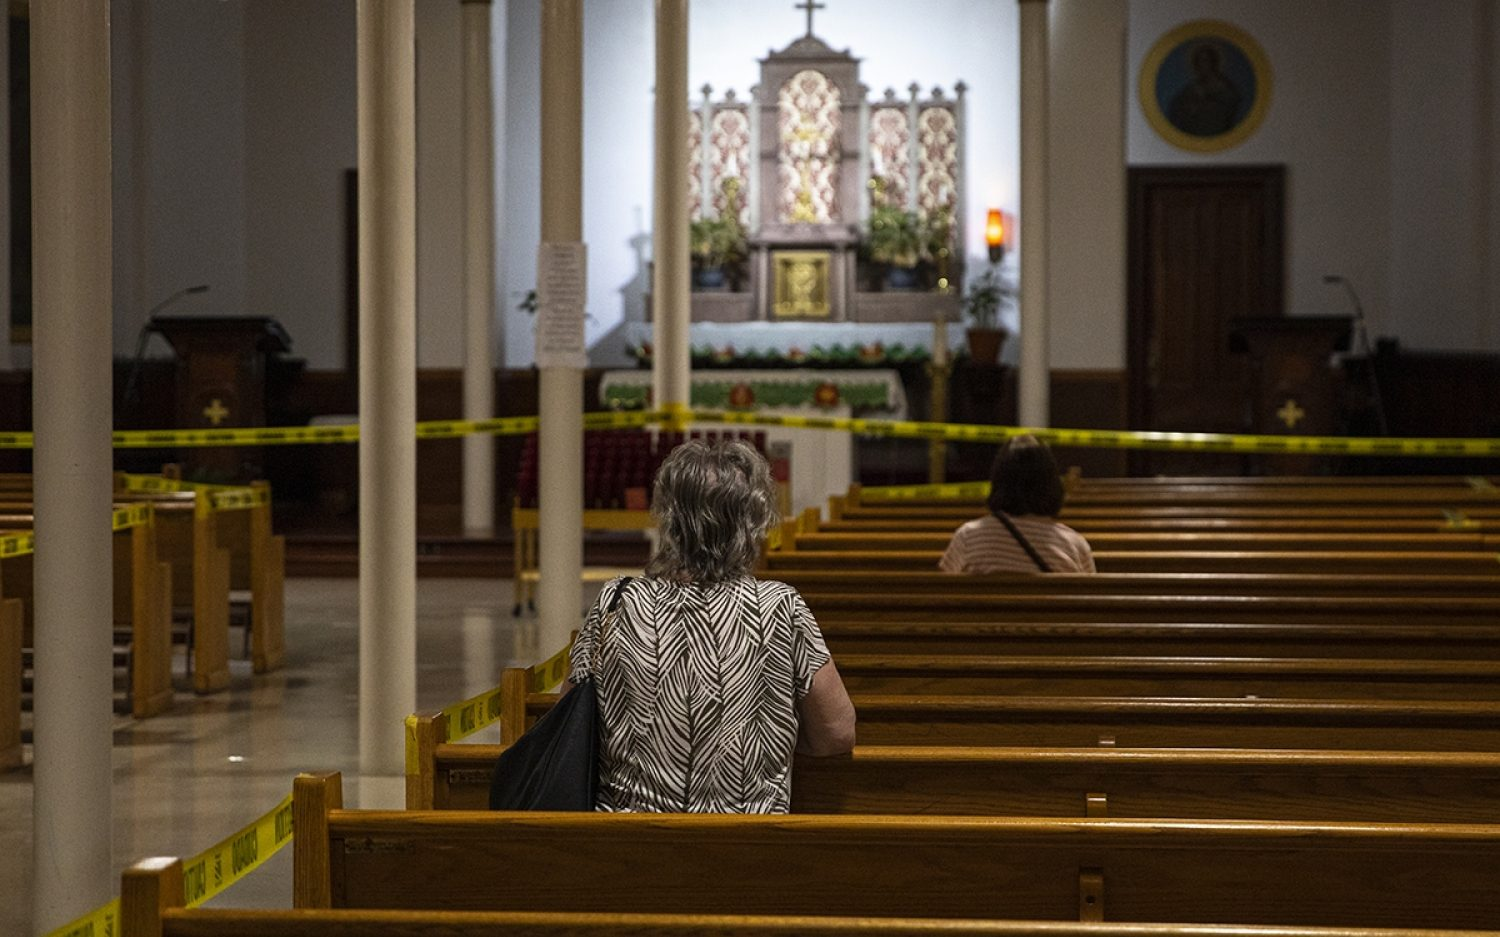 Churches, synagogues appeal for worship rights again